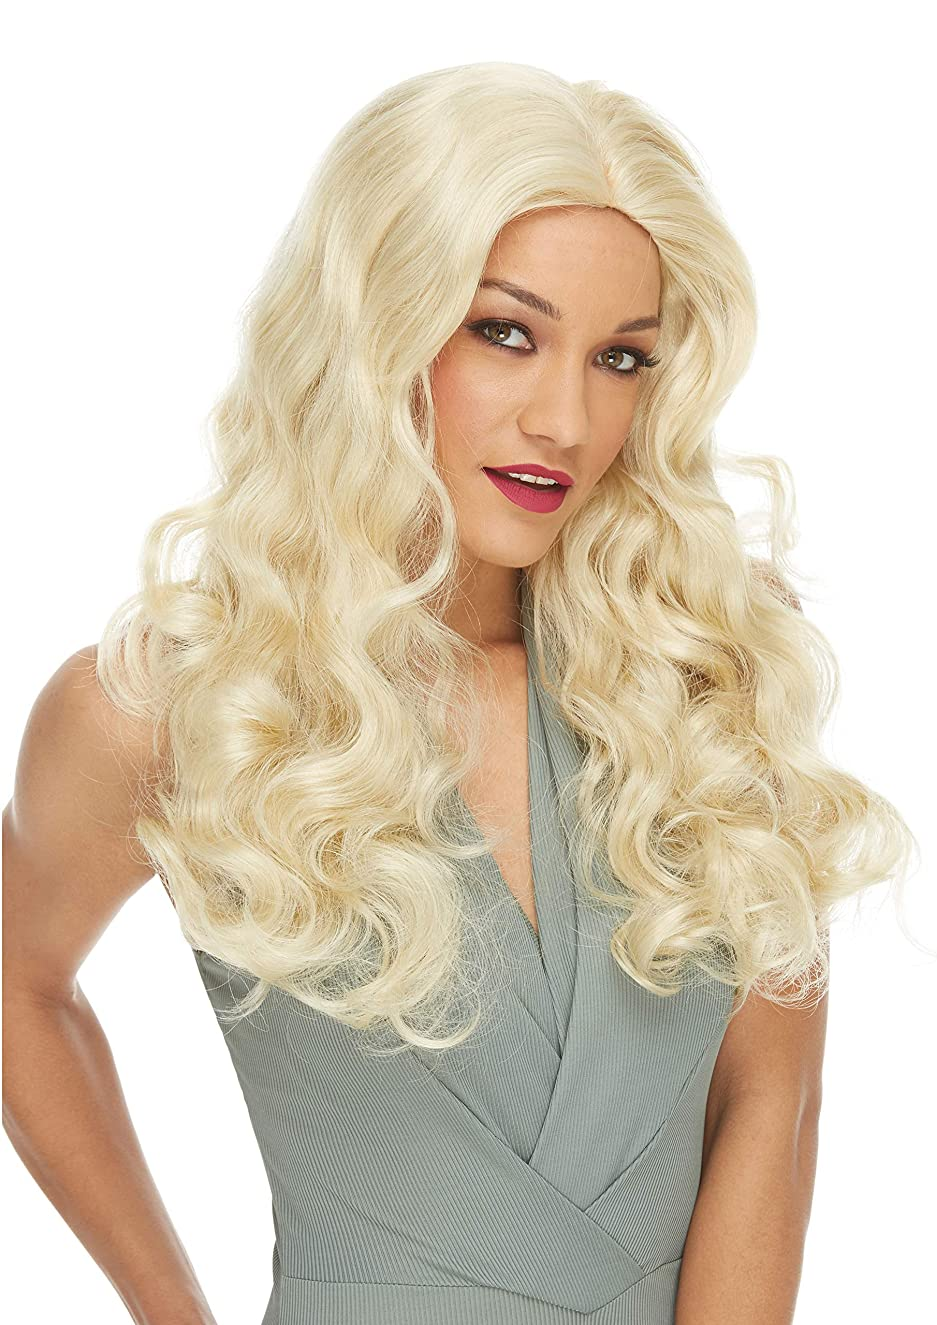 Showgirl Deluxe Wig Color Blonde - Sepia Costume Wigs Long Wavy Mid Back Length 70s Woman Ladies Witch